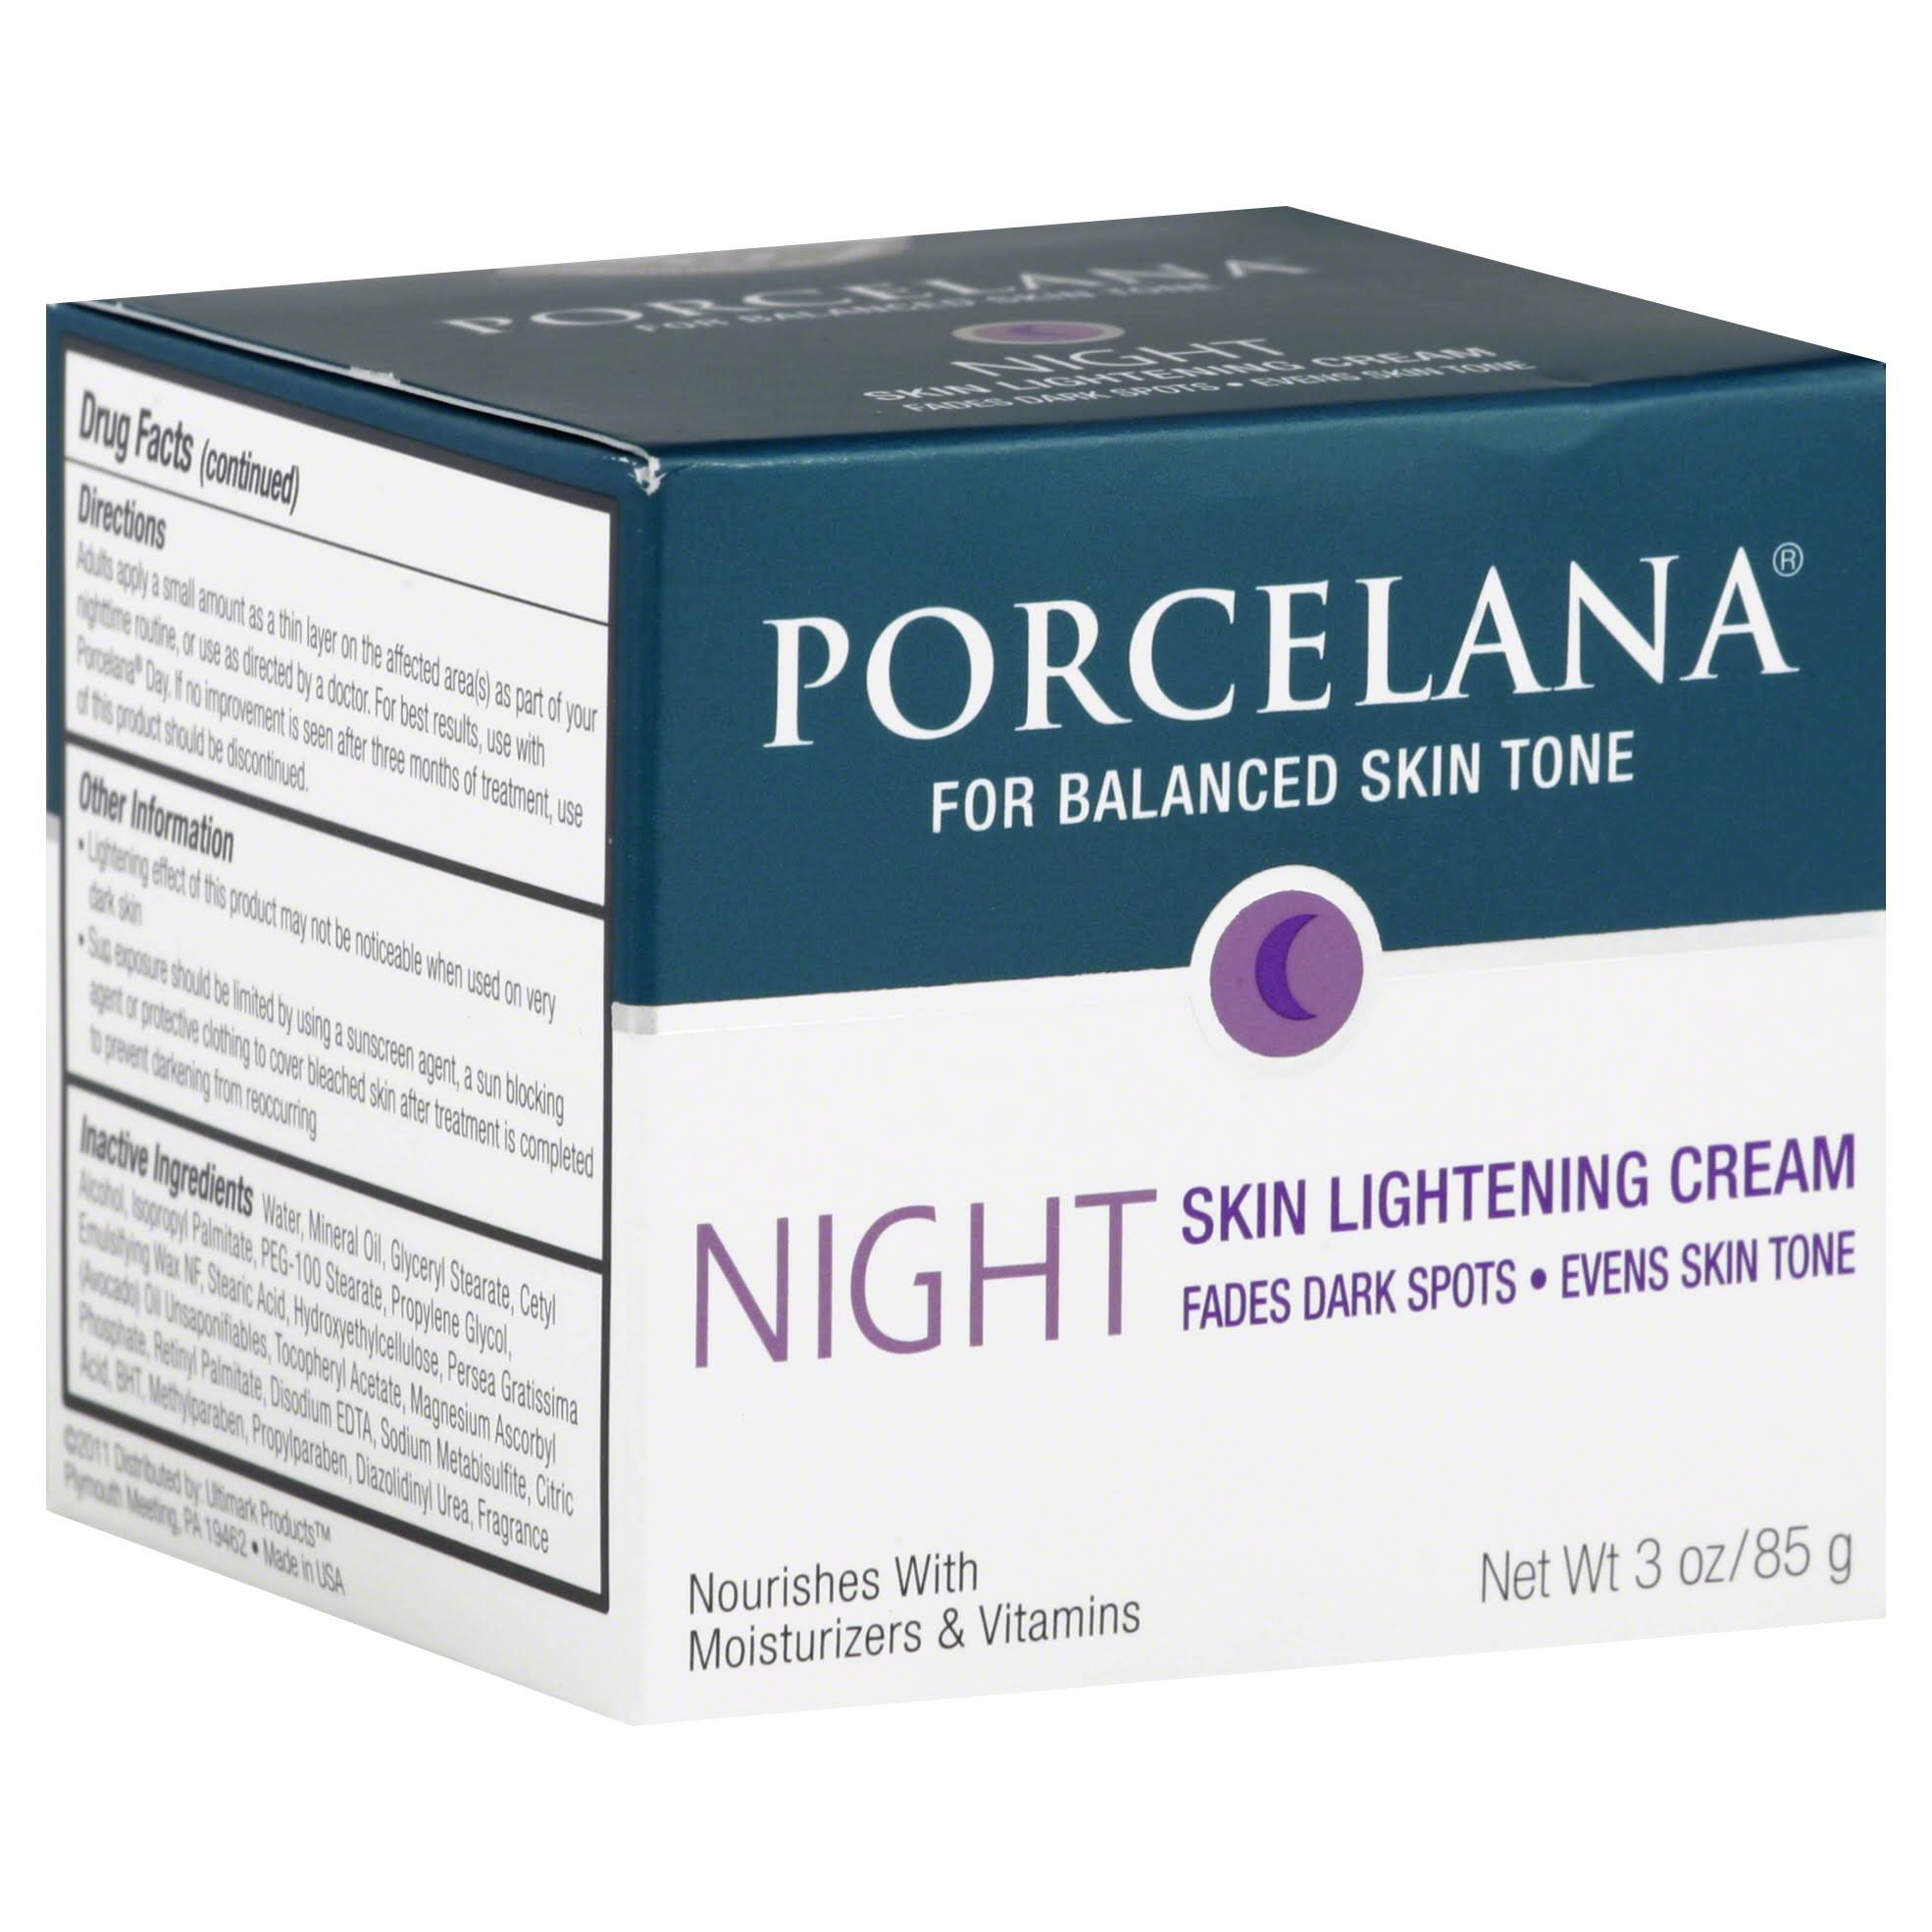 Porcelana Dark Spots Nighttime Skin Lightening Cream - 3oz, Night